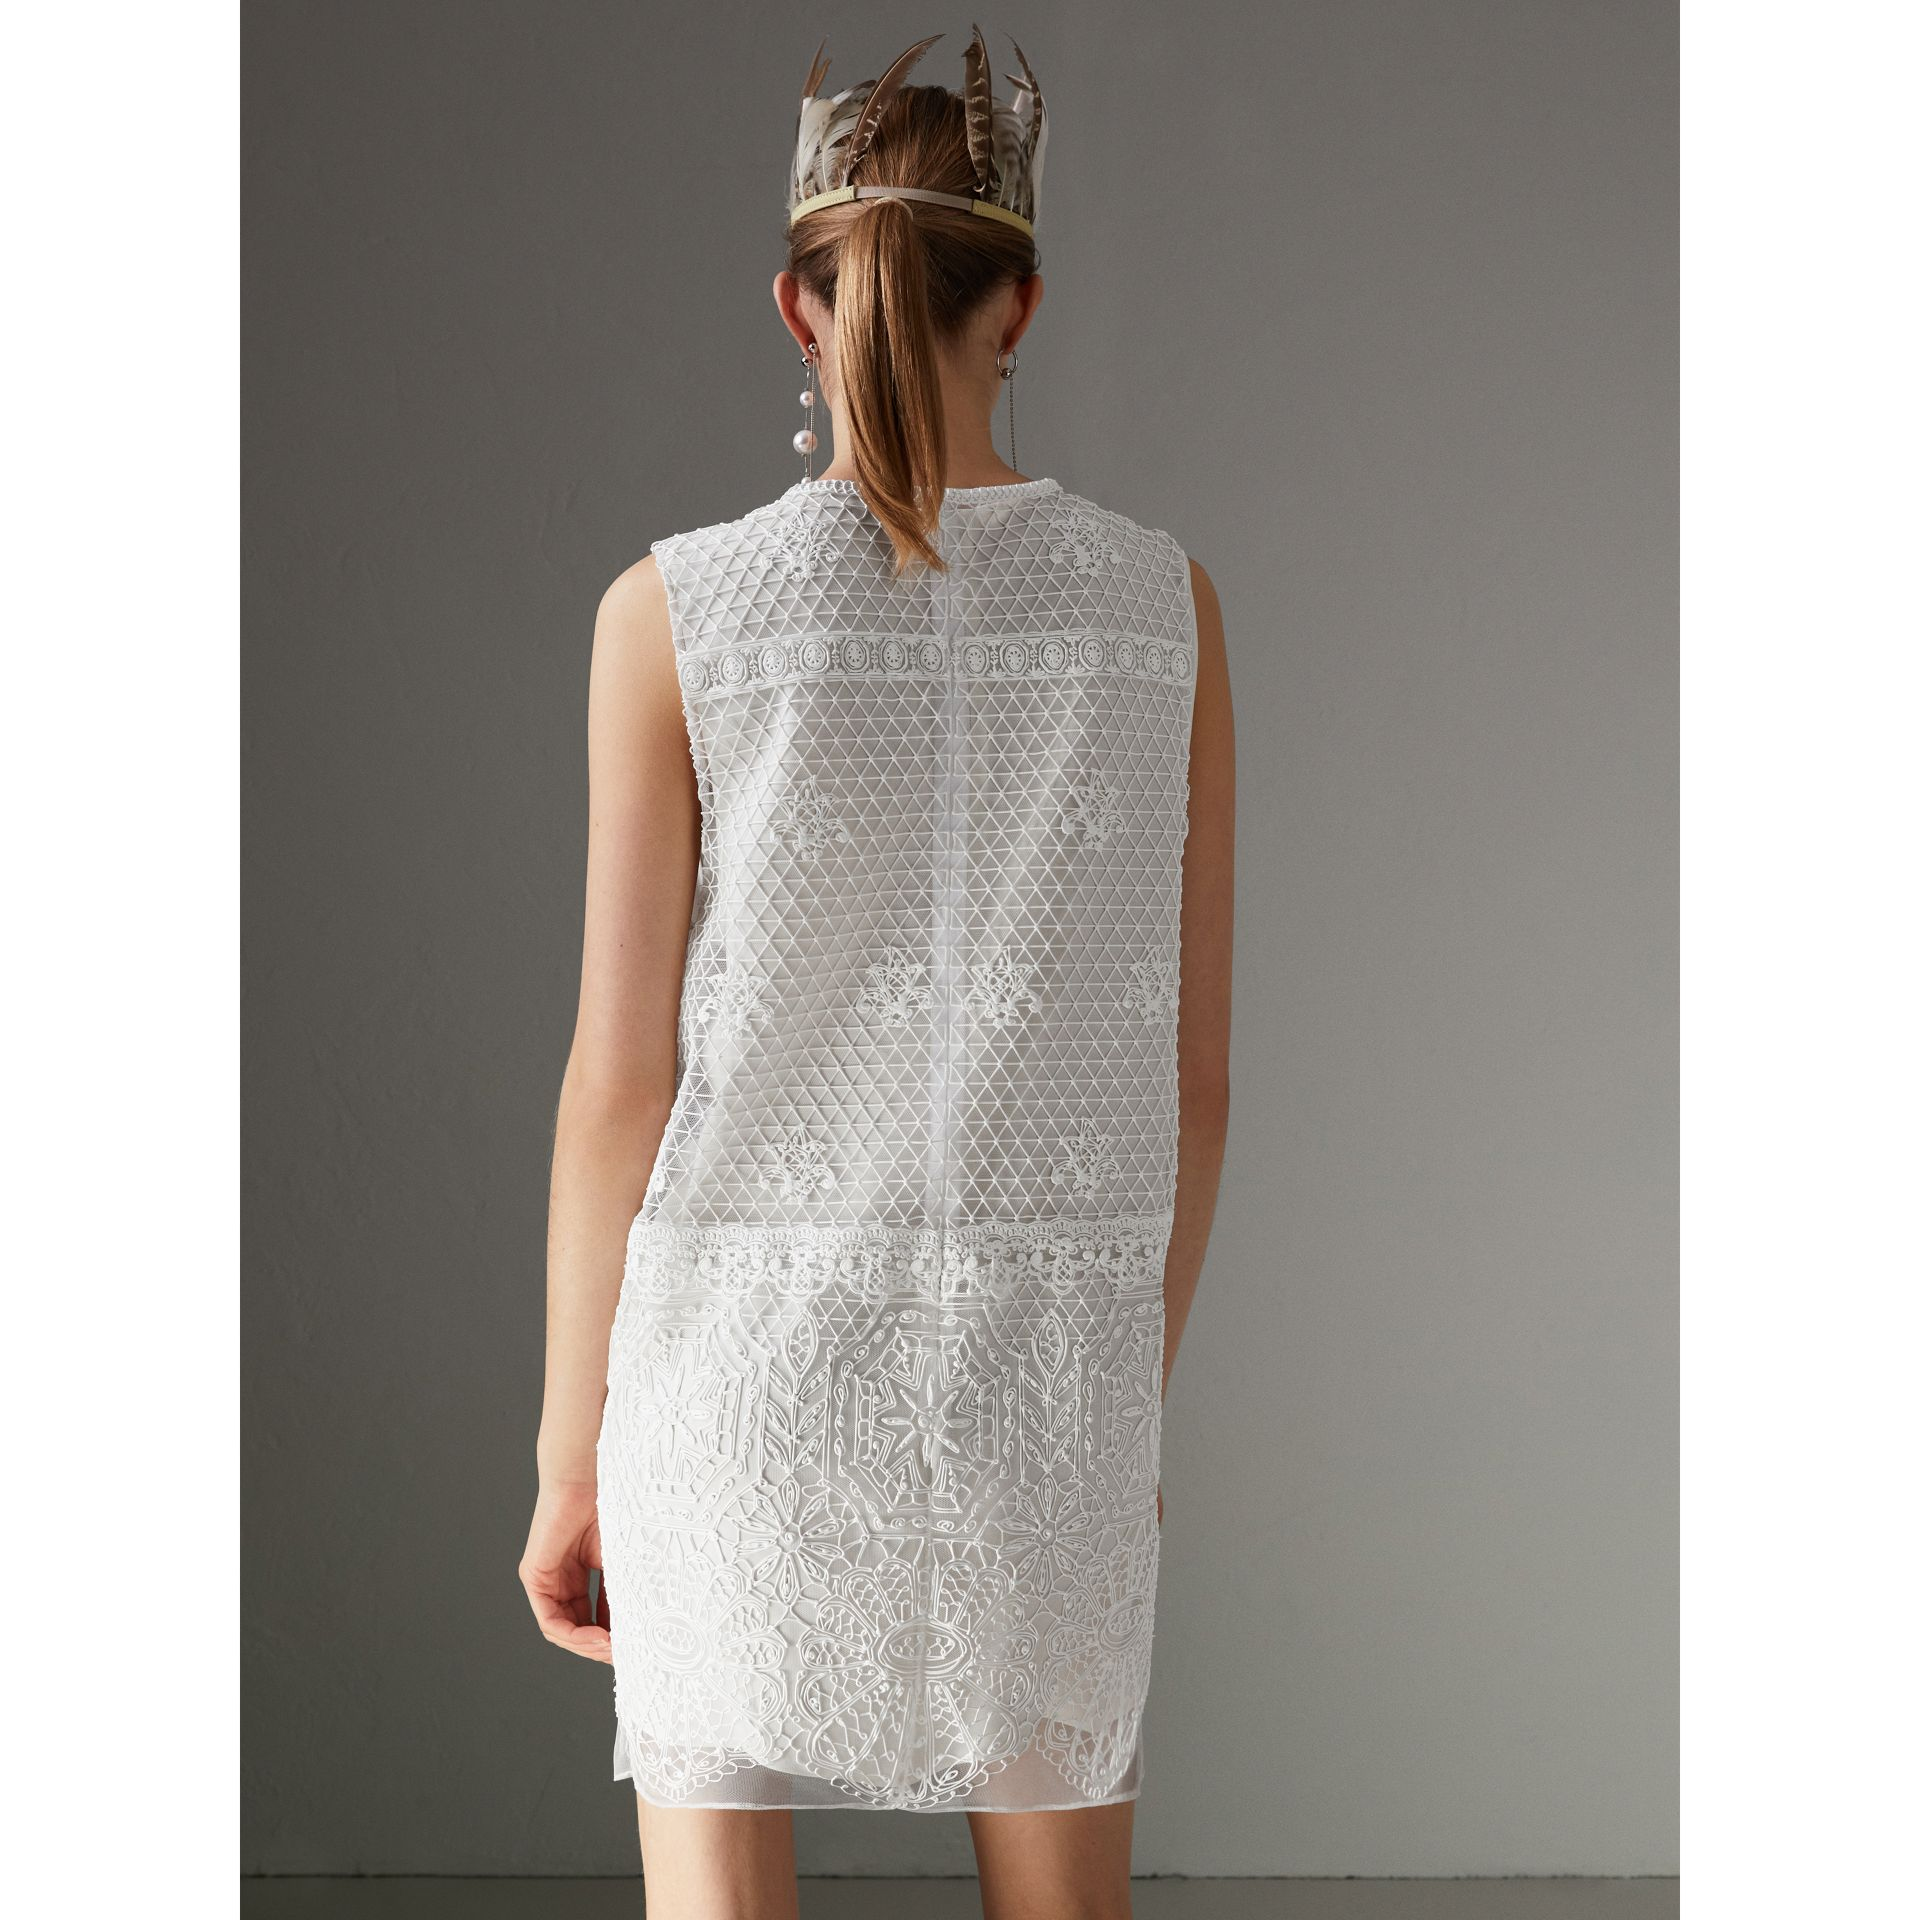 Silicone Lace Mini Dress in White - Women | Burberry Singapore - gallery image 2